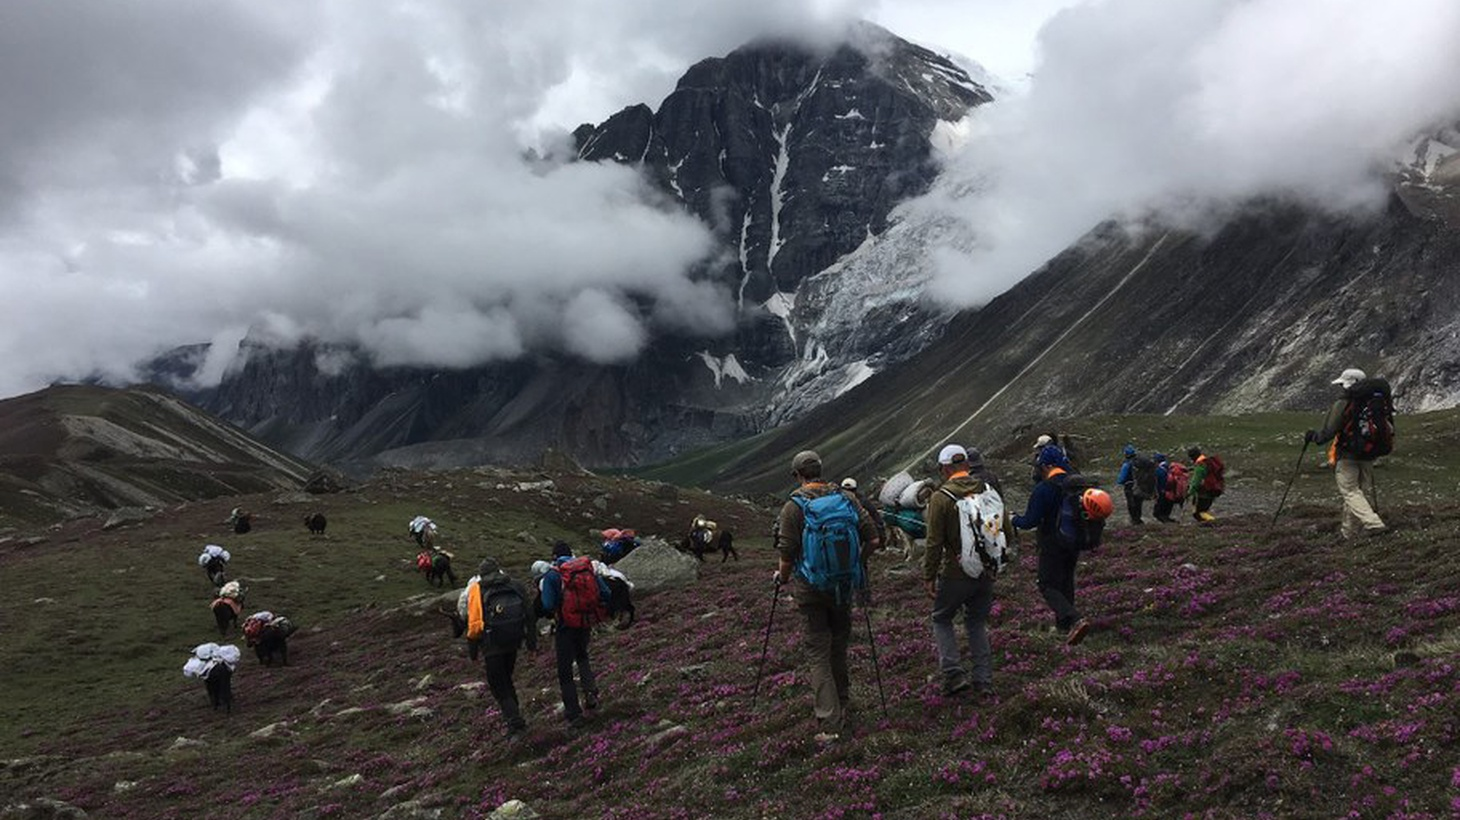 A former mountaineer returns to the Himalayas for one last climb – to bury his long lost friend. A story from KCRW's newest podcast: The Document.